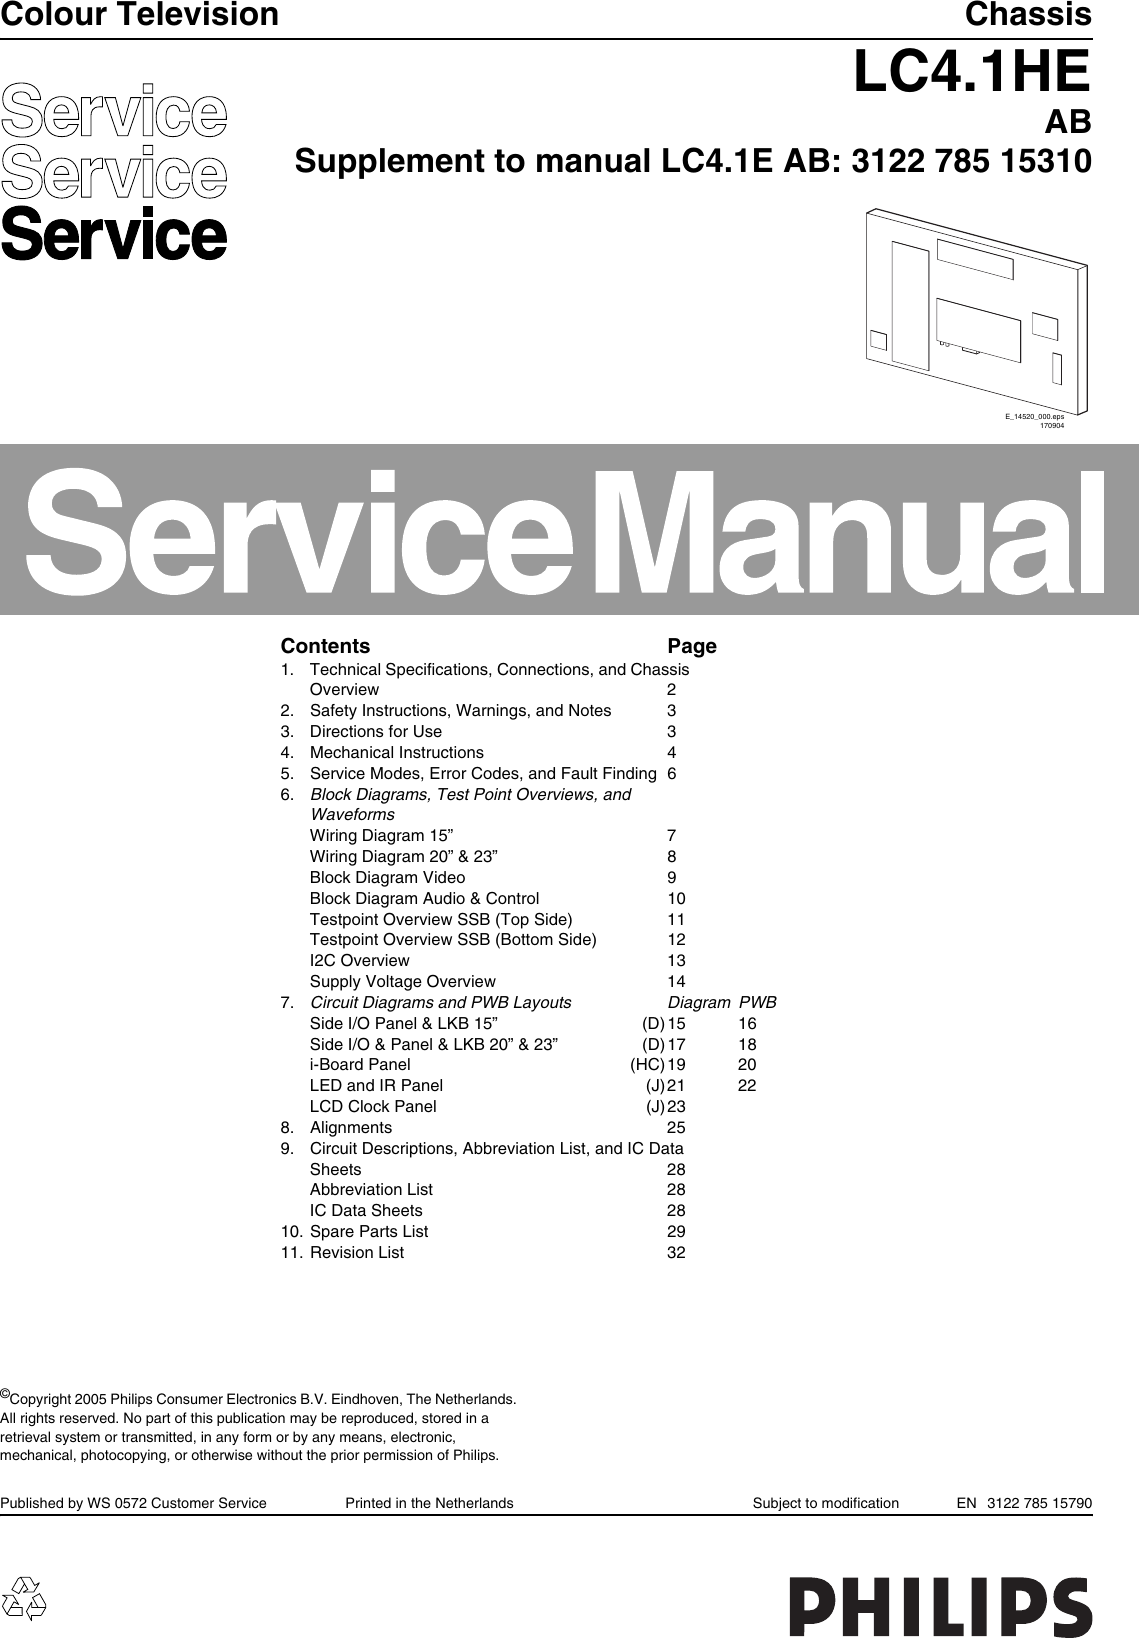 Philips Chassis Lc41he Ab Service Manual S Manualscom Tv Ch A B C Circuit Diagram